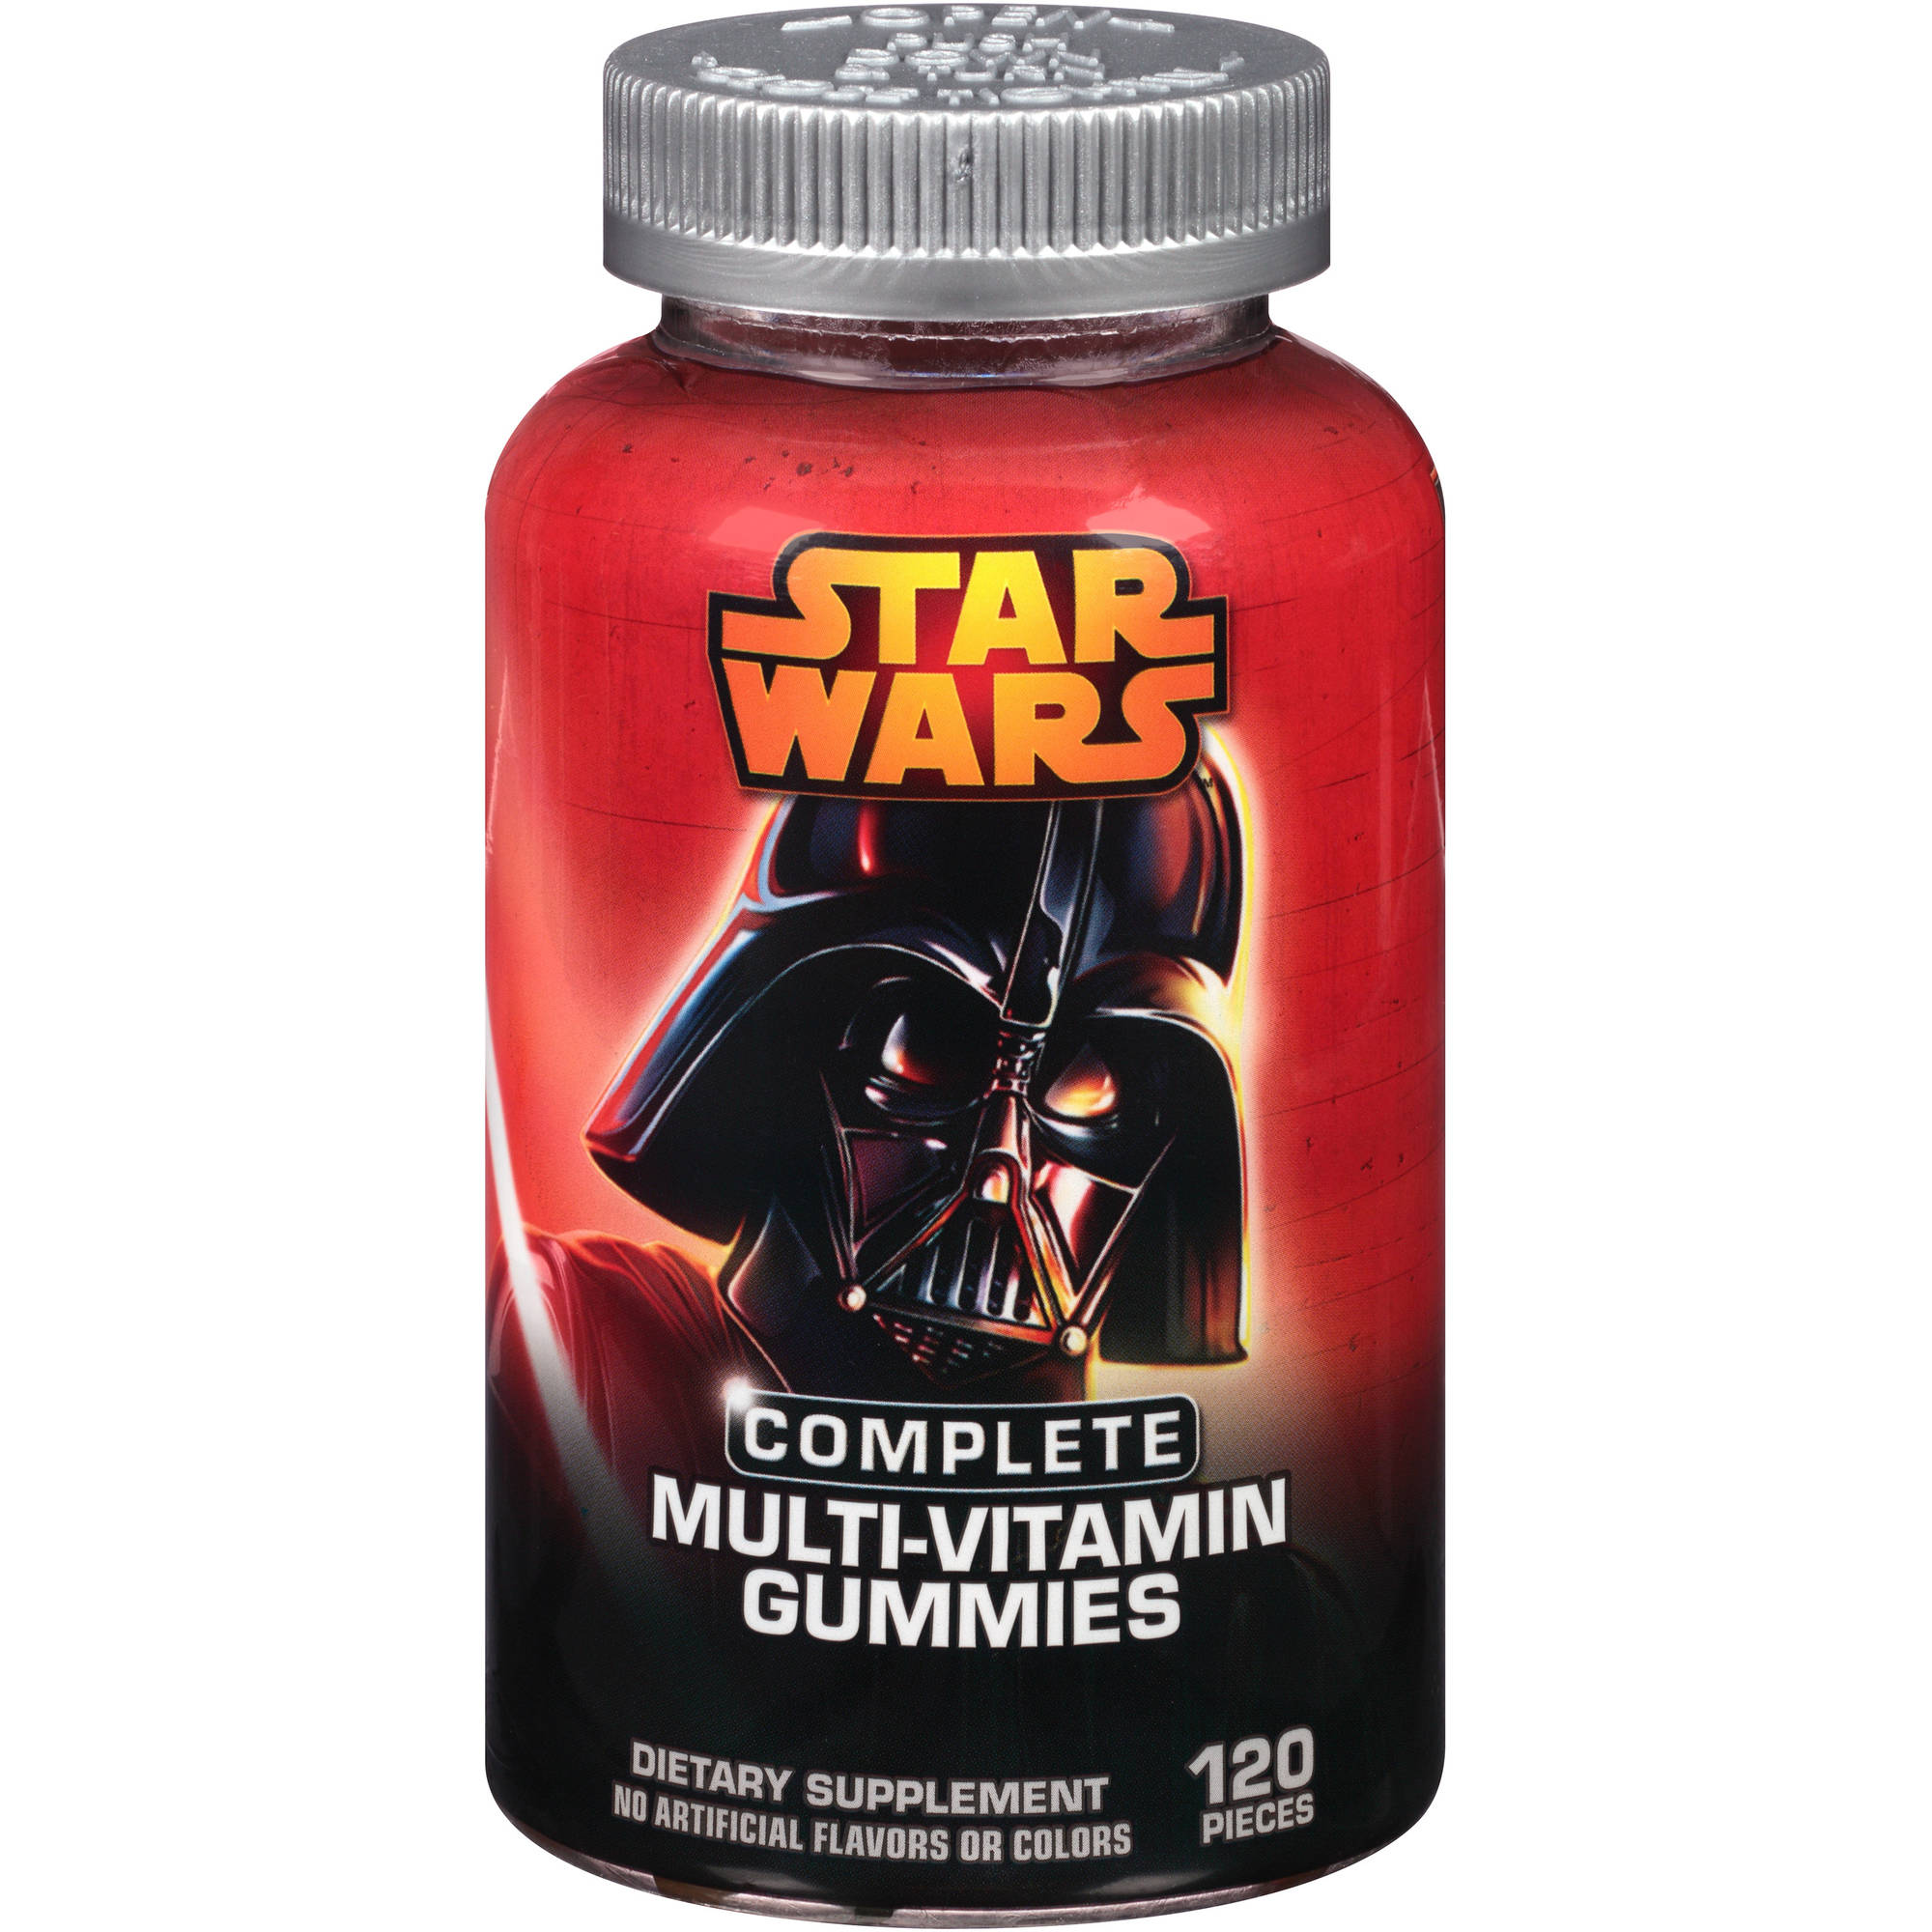 Star Wars Complete Multi-Vitamin Gummies Dietary Supplement, 120 count